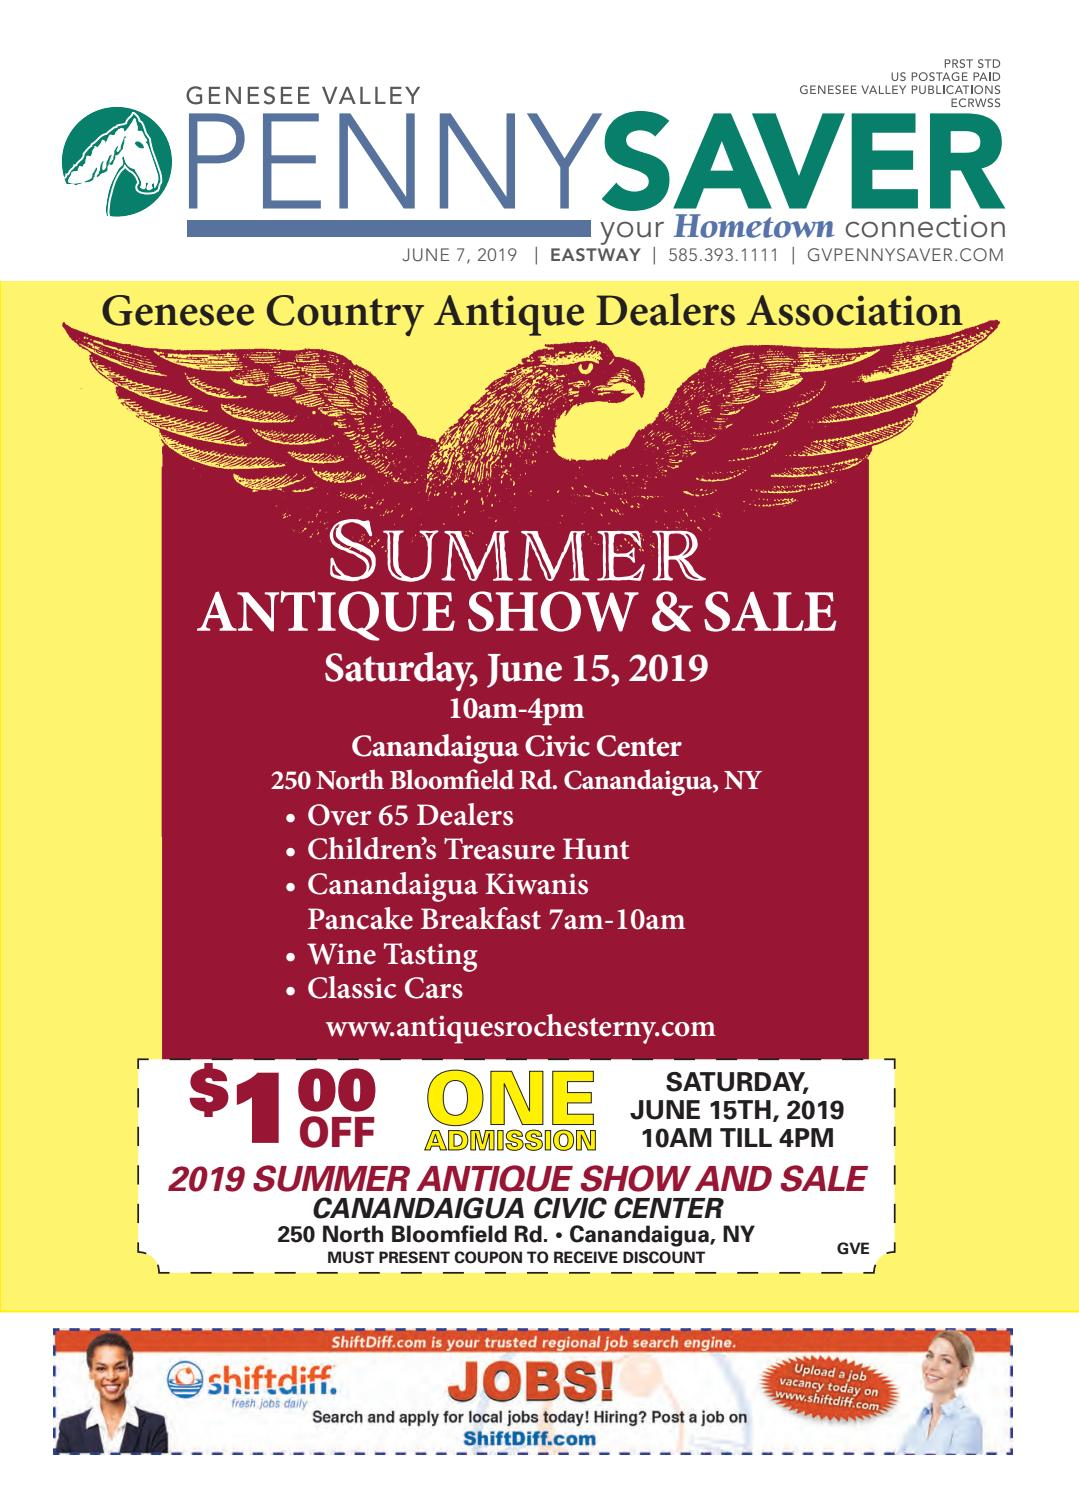 Eastway Edition - Genesee Valley Penny Saver 6-7-2019 by